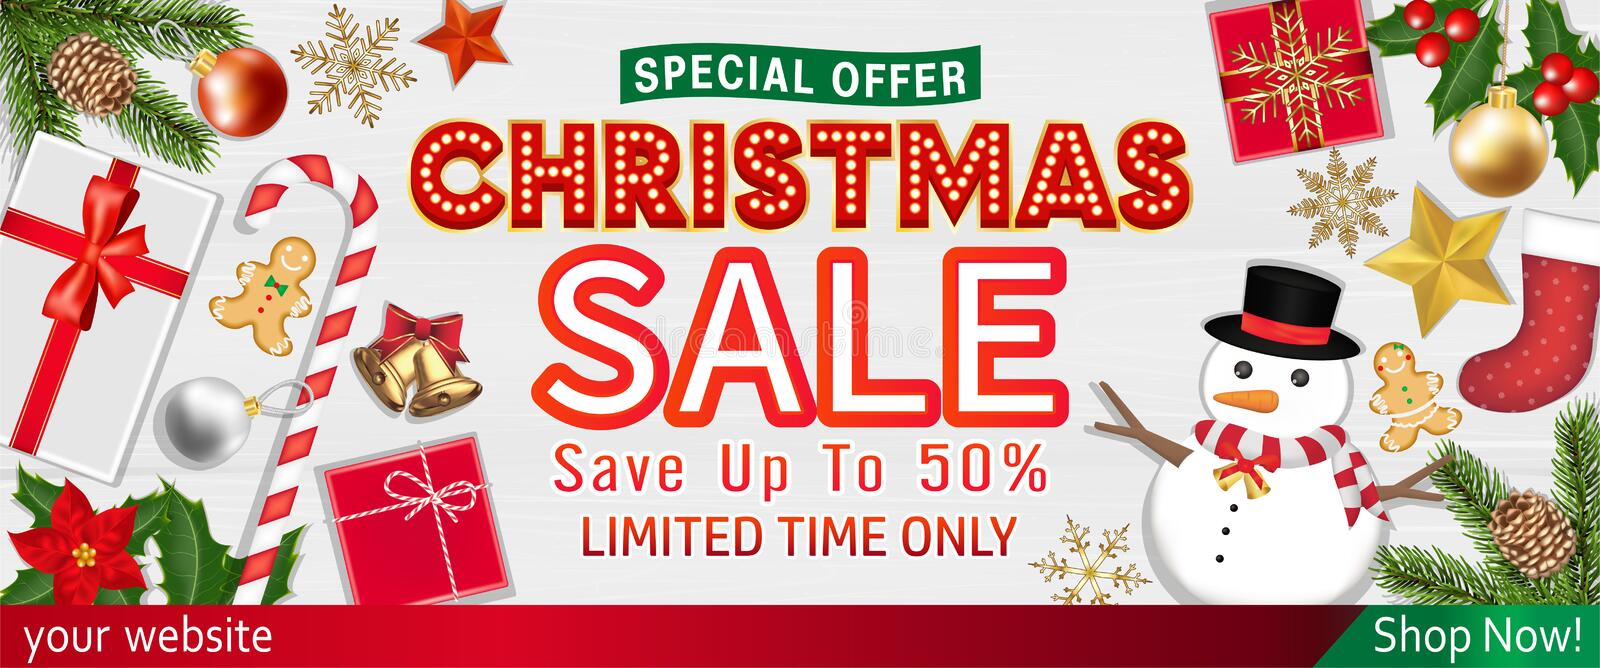 Merry Chrismast sale with Object Top View poster. A Merry Chrismast sale with Object Top View poster vector illustration